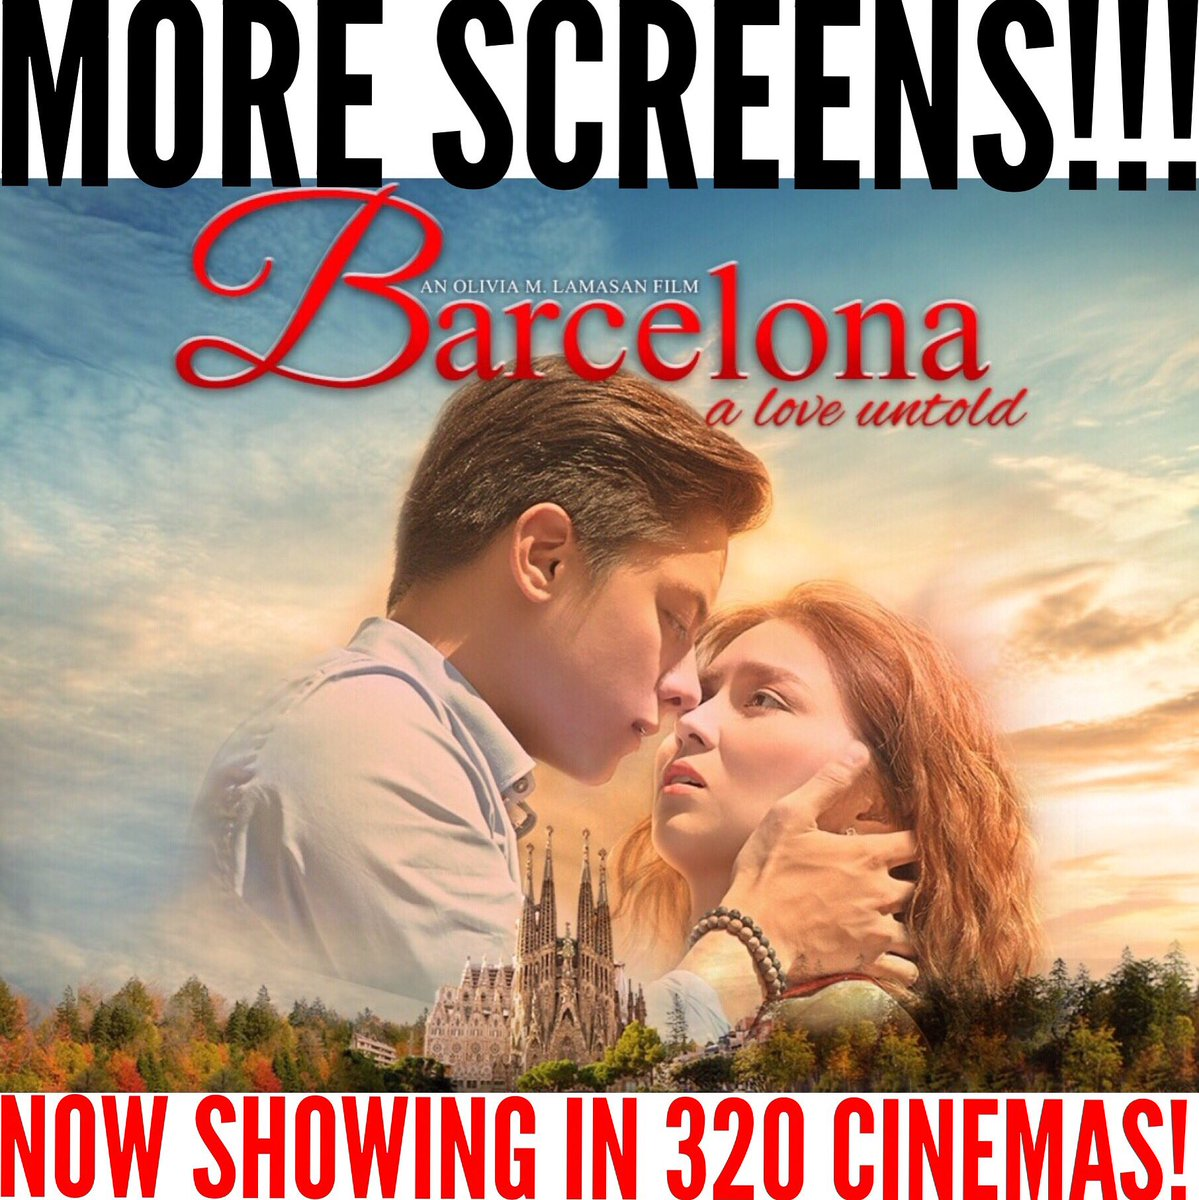 Now Showing in 320 cinemas nationwide!!! Go catch #BarcelonaALoveUntold in theaters everywhere! ❤️❤️❤️ https://t.co/4PU7jtYNIm